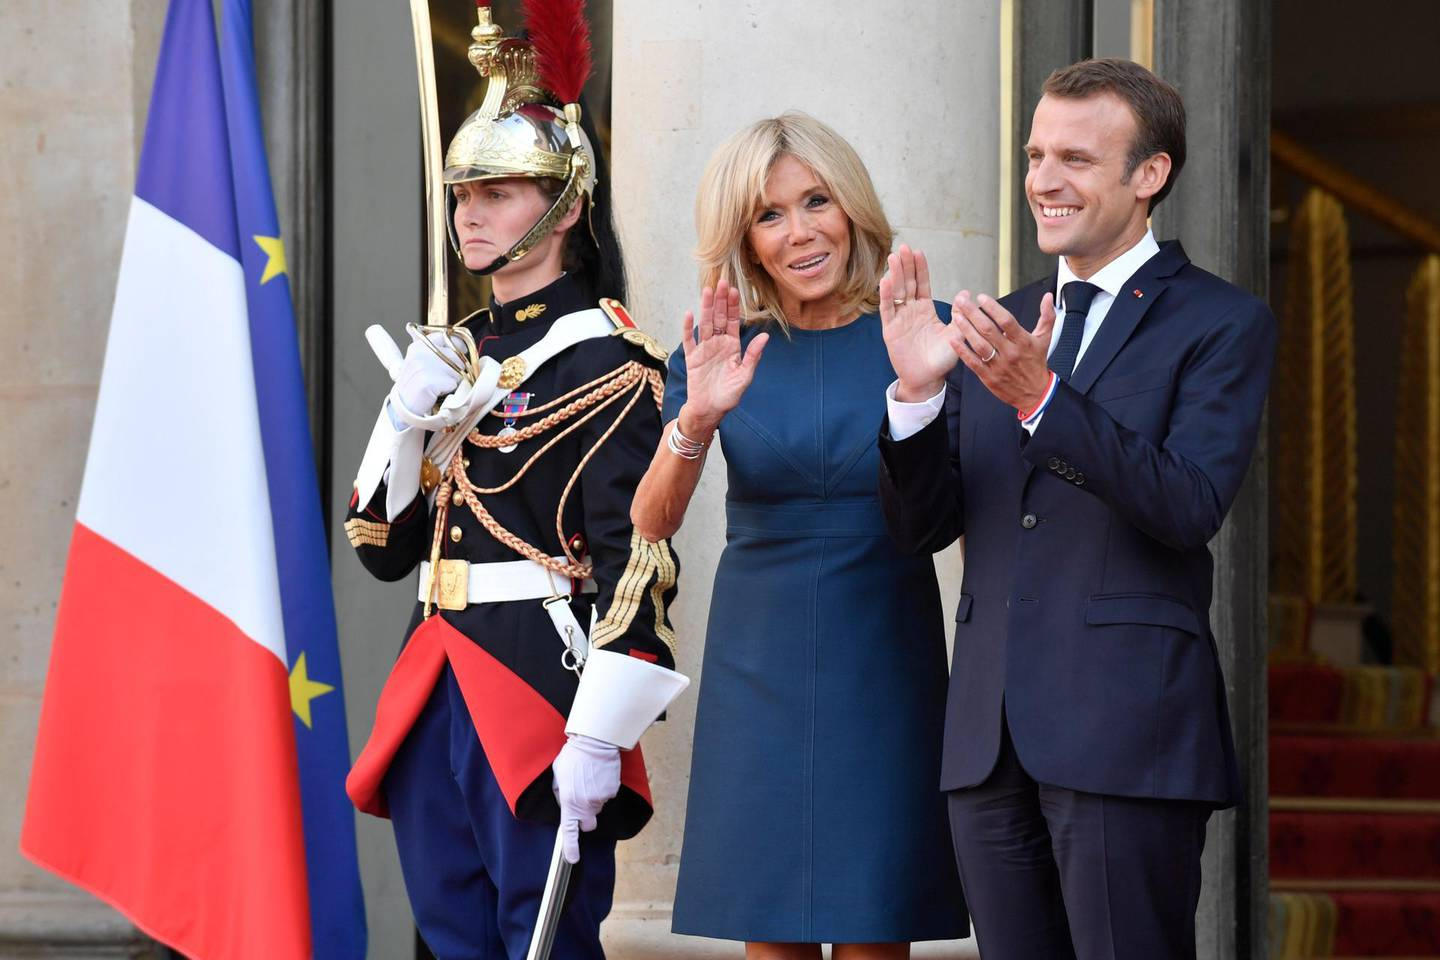 epa06893549 French President Emmanuel Macron and French First Lady Brigitte Macron wait for the France's national soccer team players at the Elysee Palace, in Paris, 16 July 2018. France won 4-2 the FIFA World Cup 2018 final against Croatia in Moscow, on 15 July.  EPA/JULIEN DE ROSA